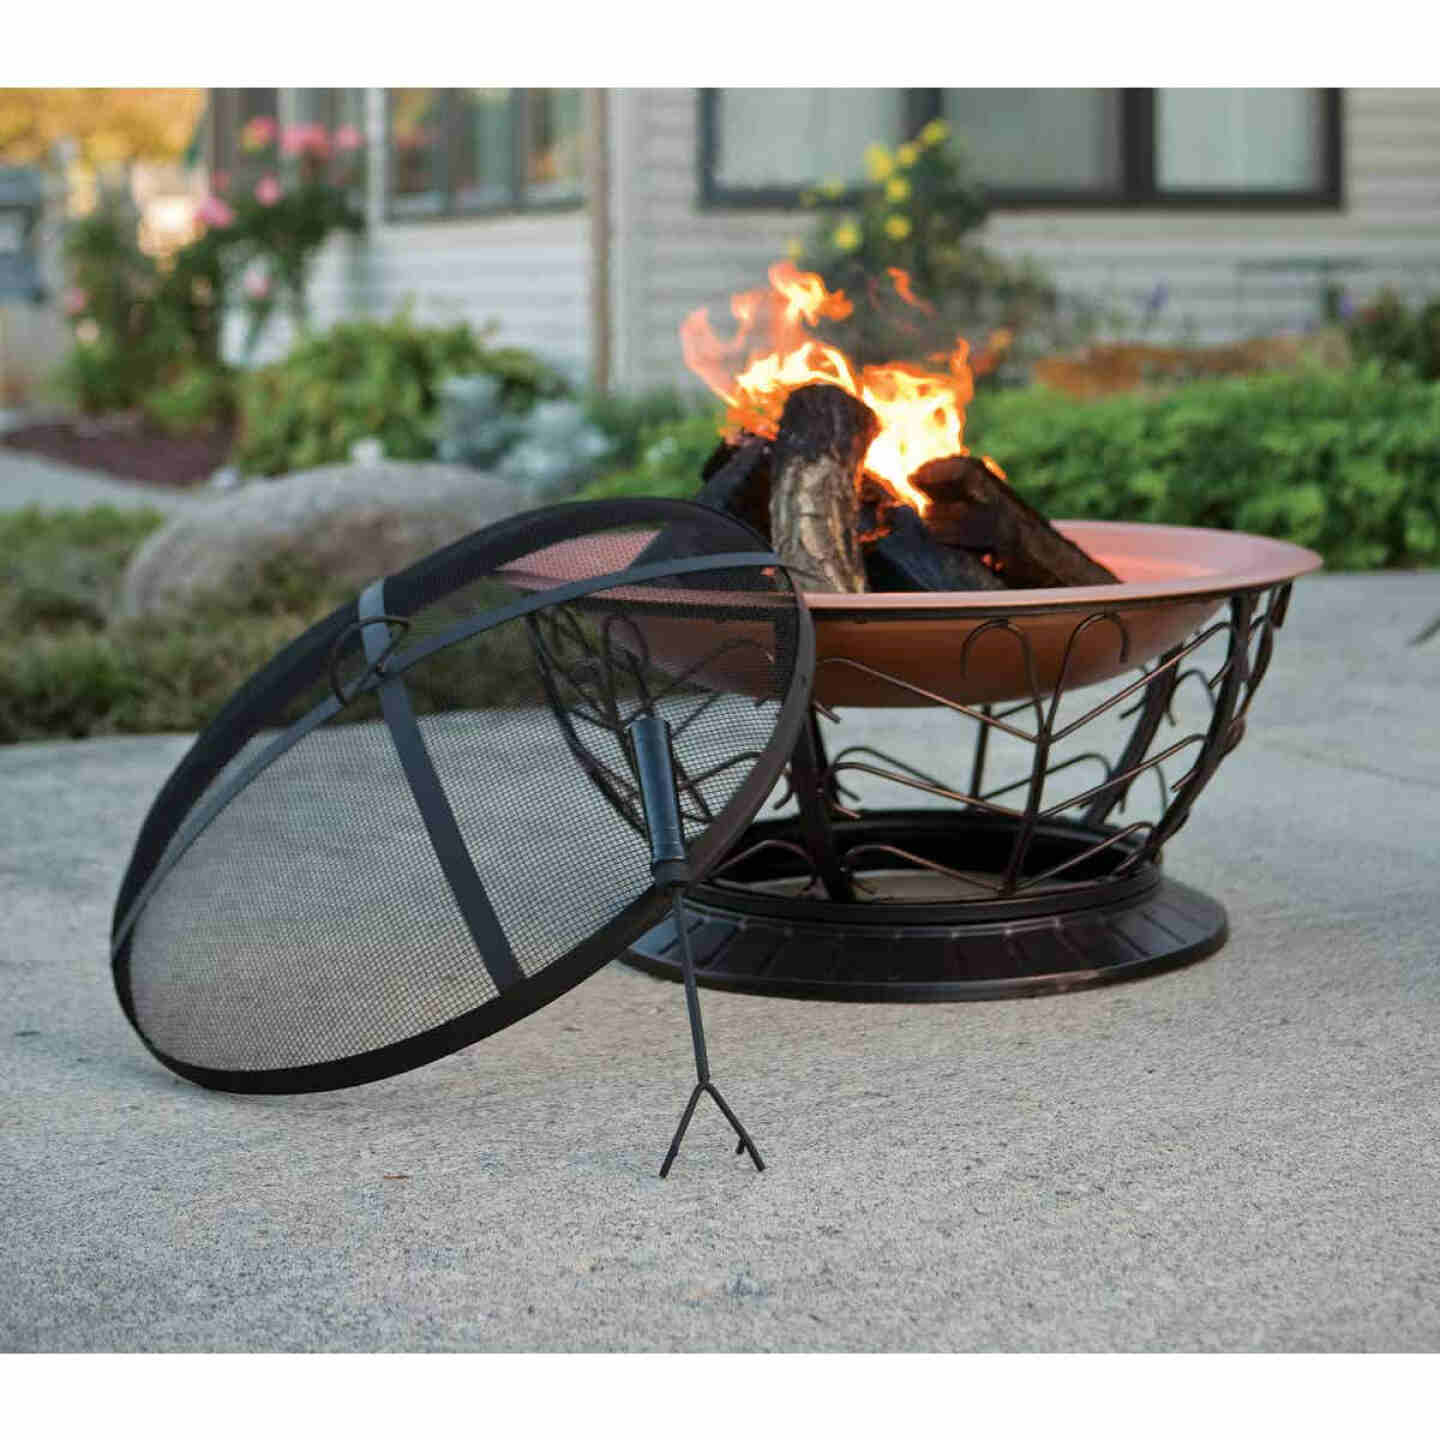 Outdoor Expressions 30 In. Coppertone Round Steel Fire Pit Image 2